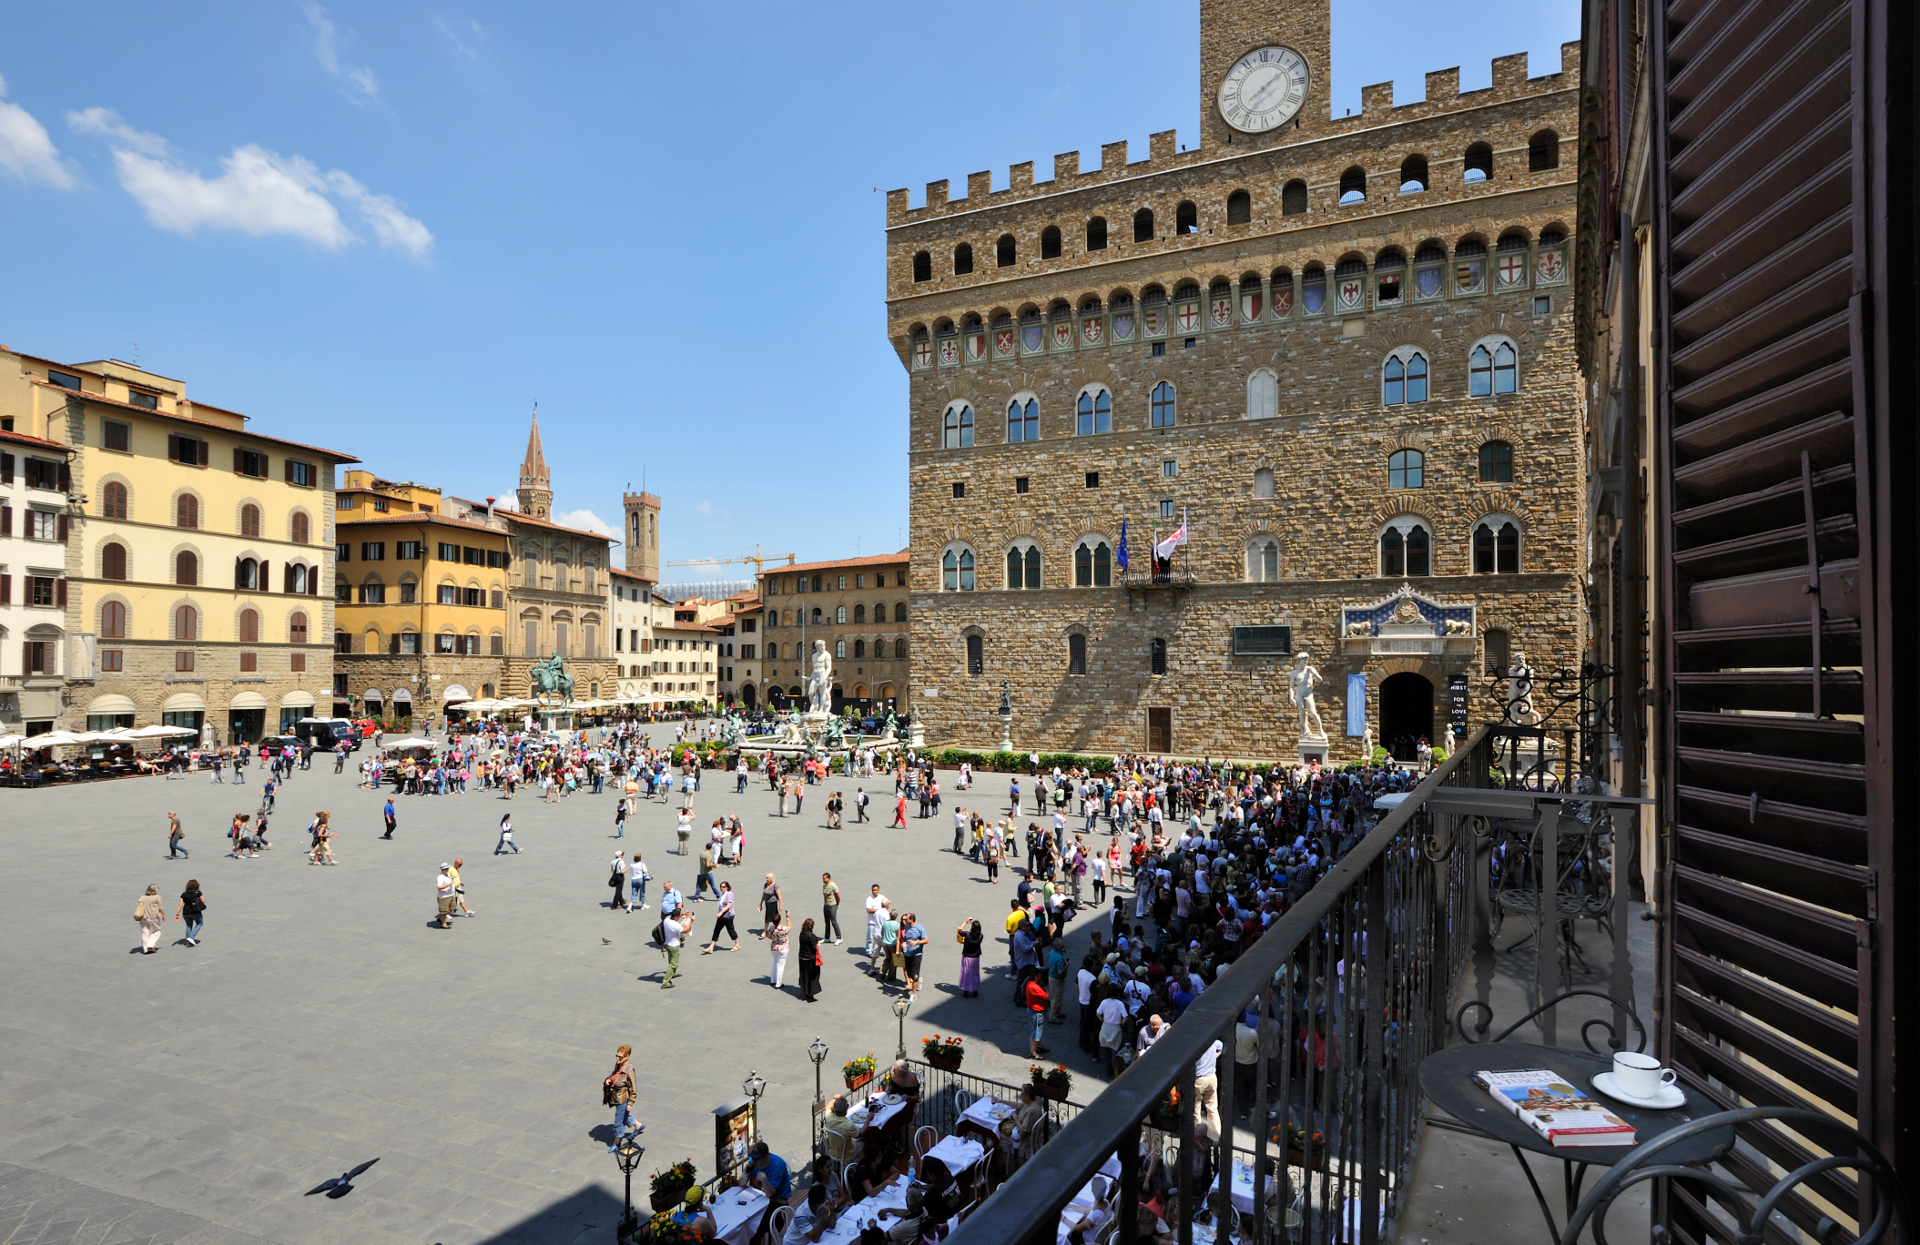 City Of Florence: With Piazza Della Signoria View